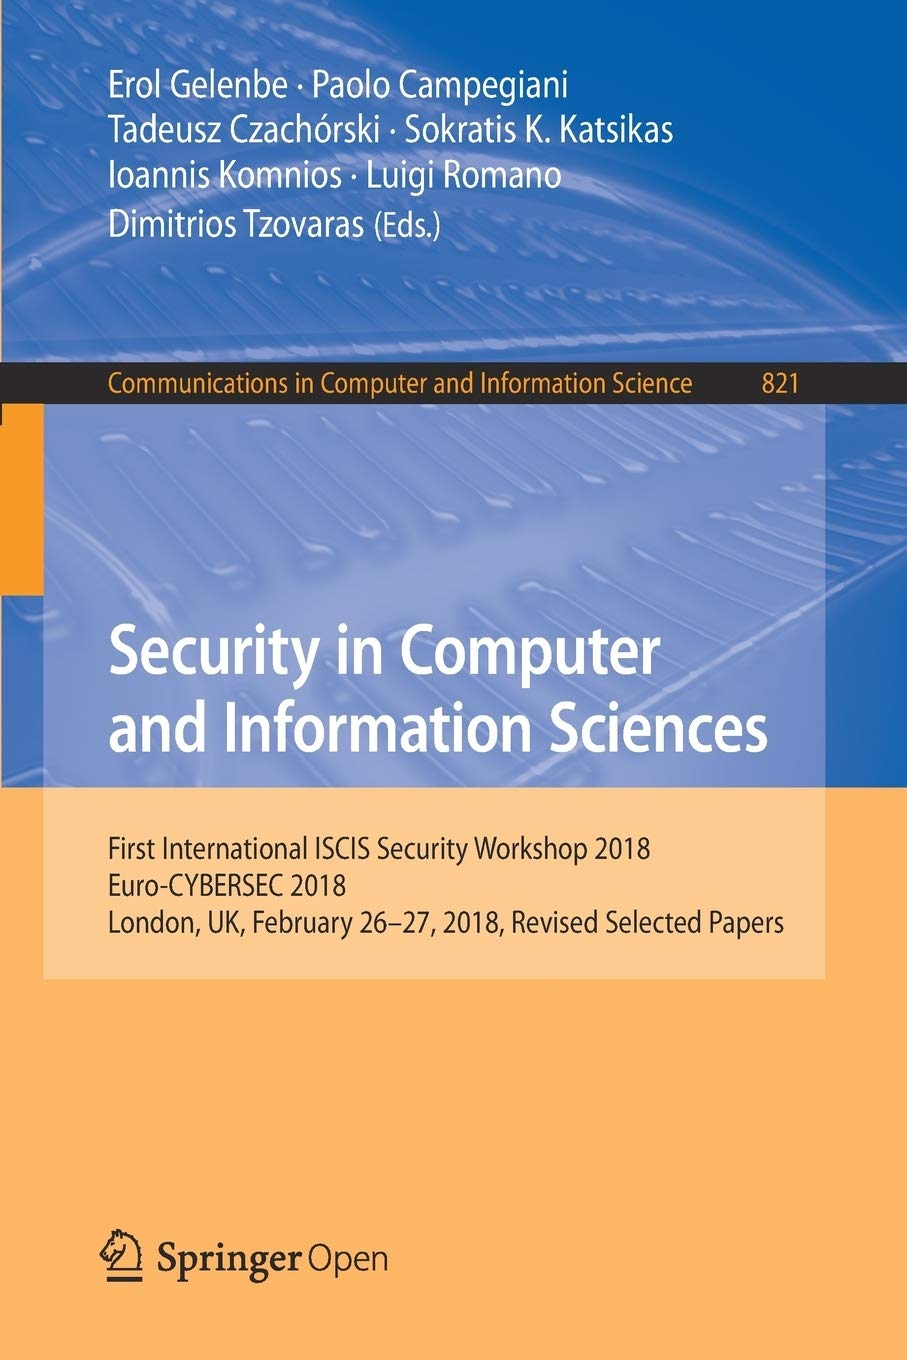 Image OfSecurity In Computer And Information Sciences: First International ISCIS Security Workshop 2018, Euro-CYBERSEC 2018, Londo...